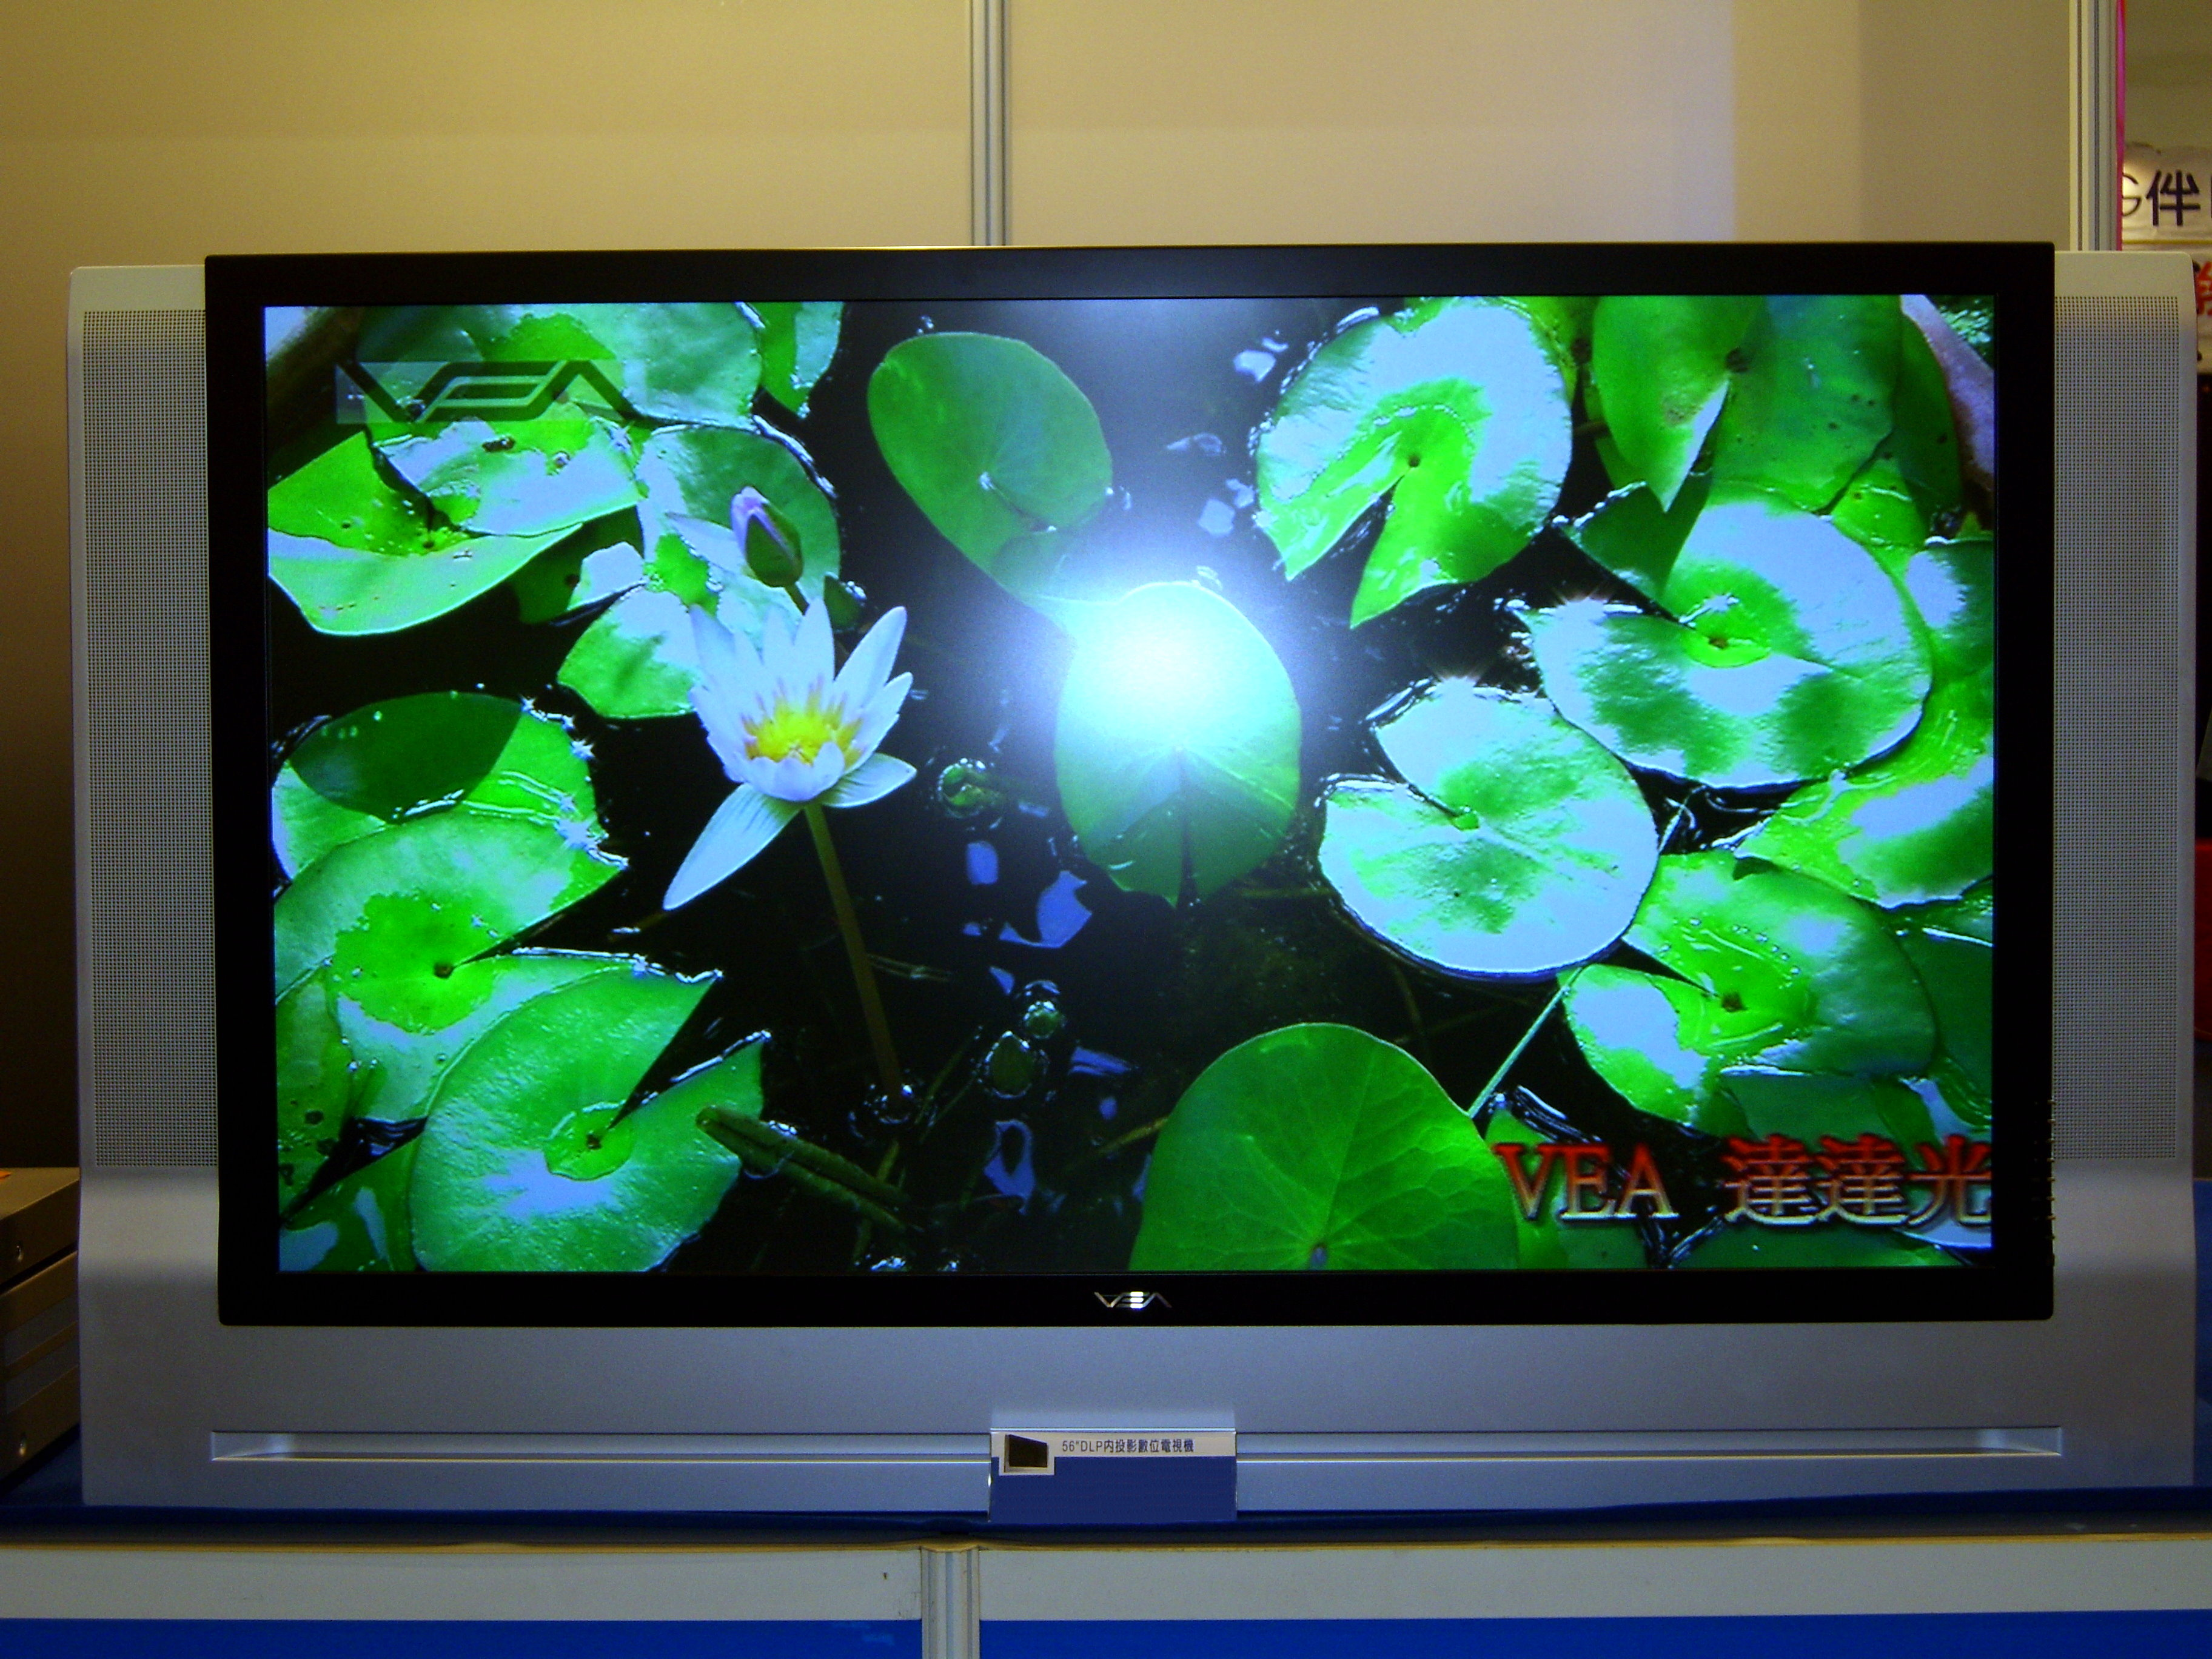 Large-screen television technology - Wikipedia